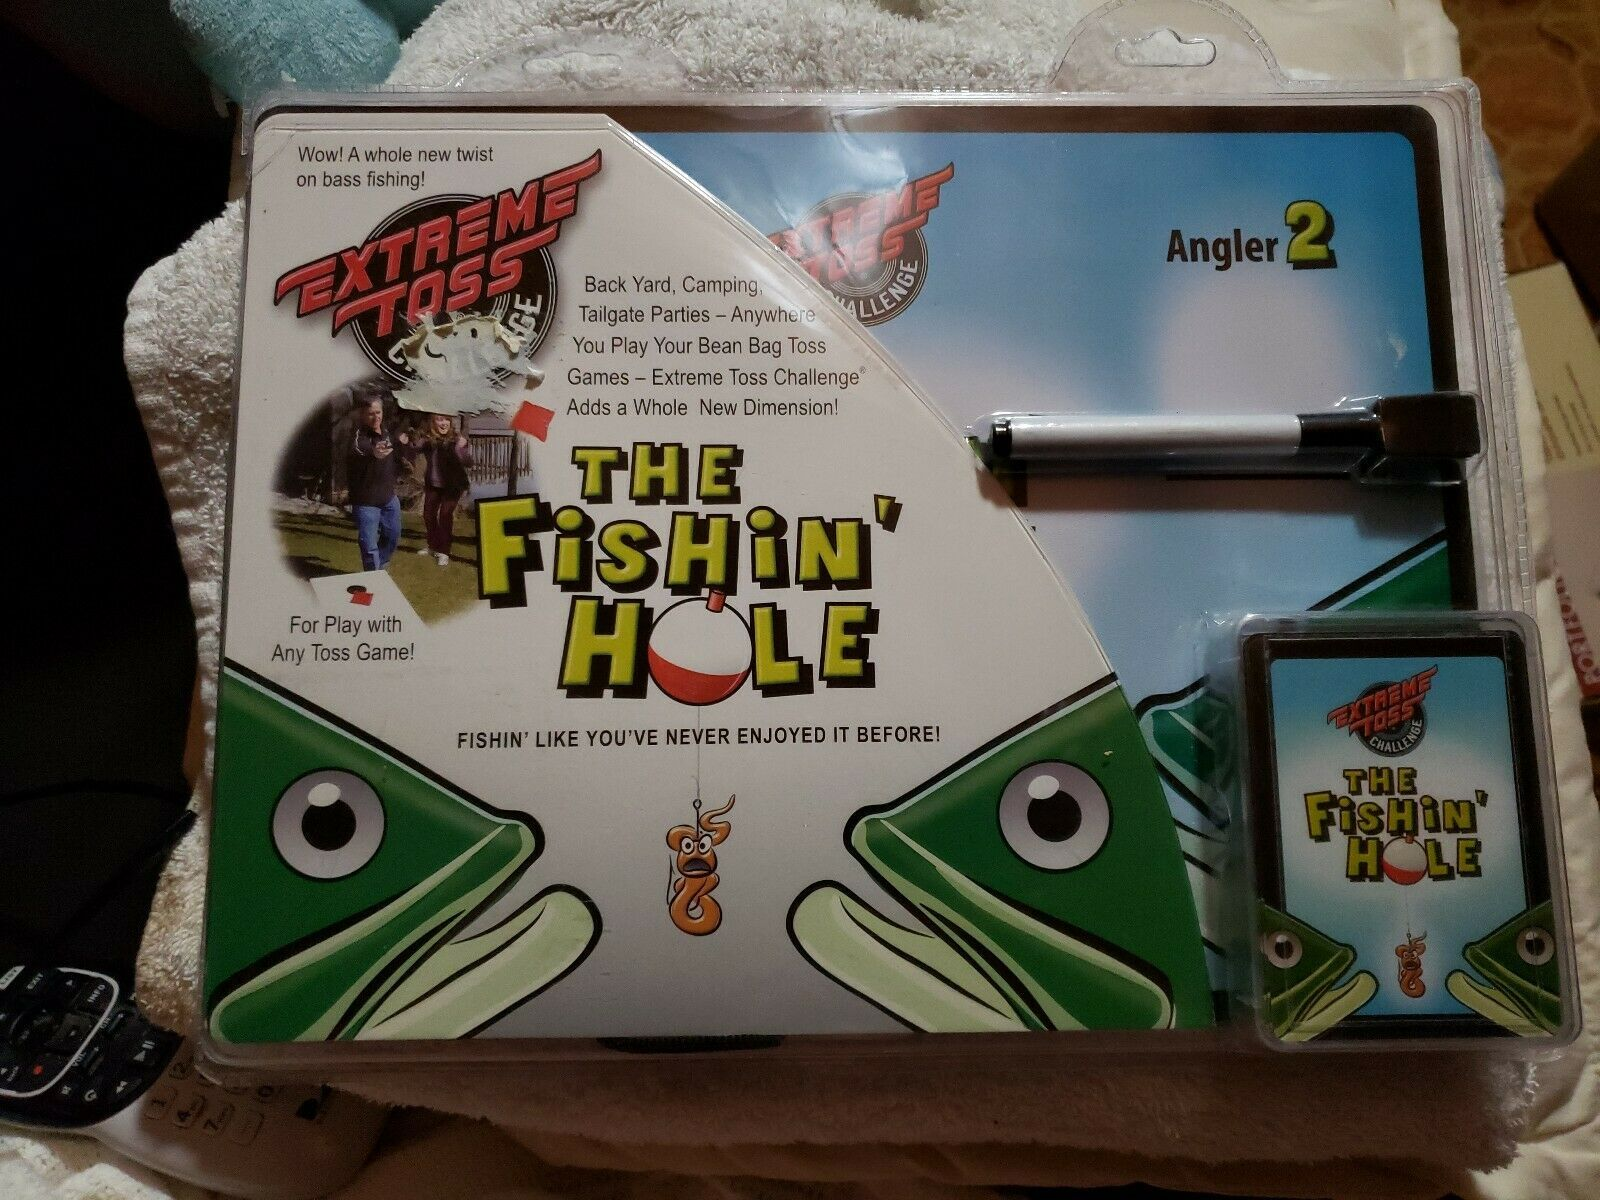 The Fishin' Hole Extreme Toss Game